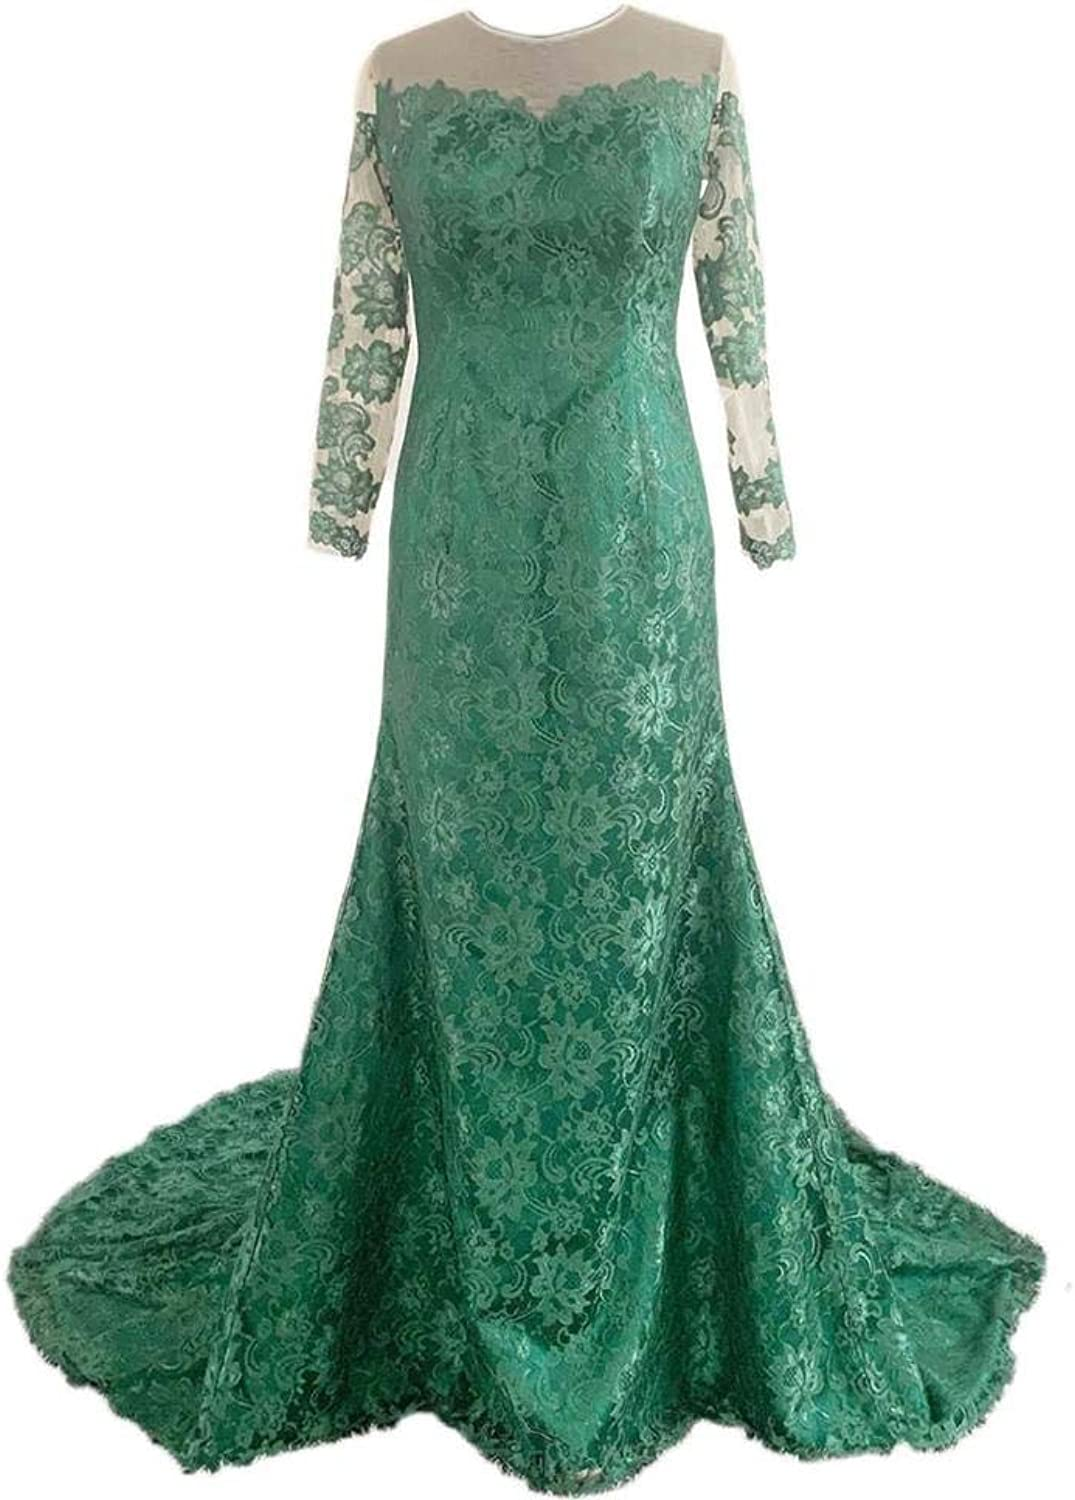 Alexzendra Dark Green Mermaid Lace Evening Dress with Long Sleeves Prom Dress Party